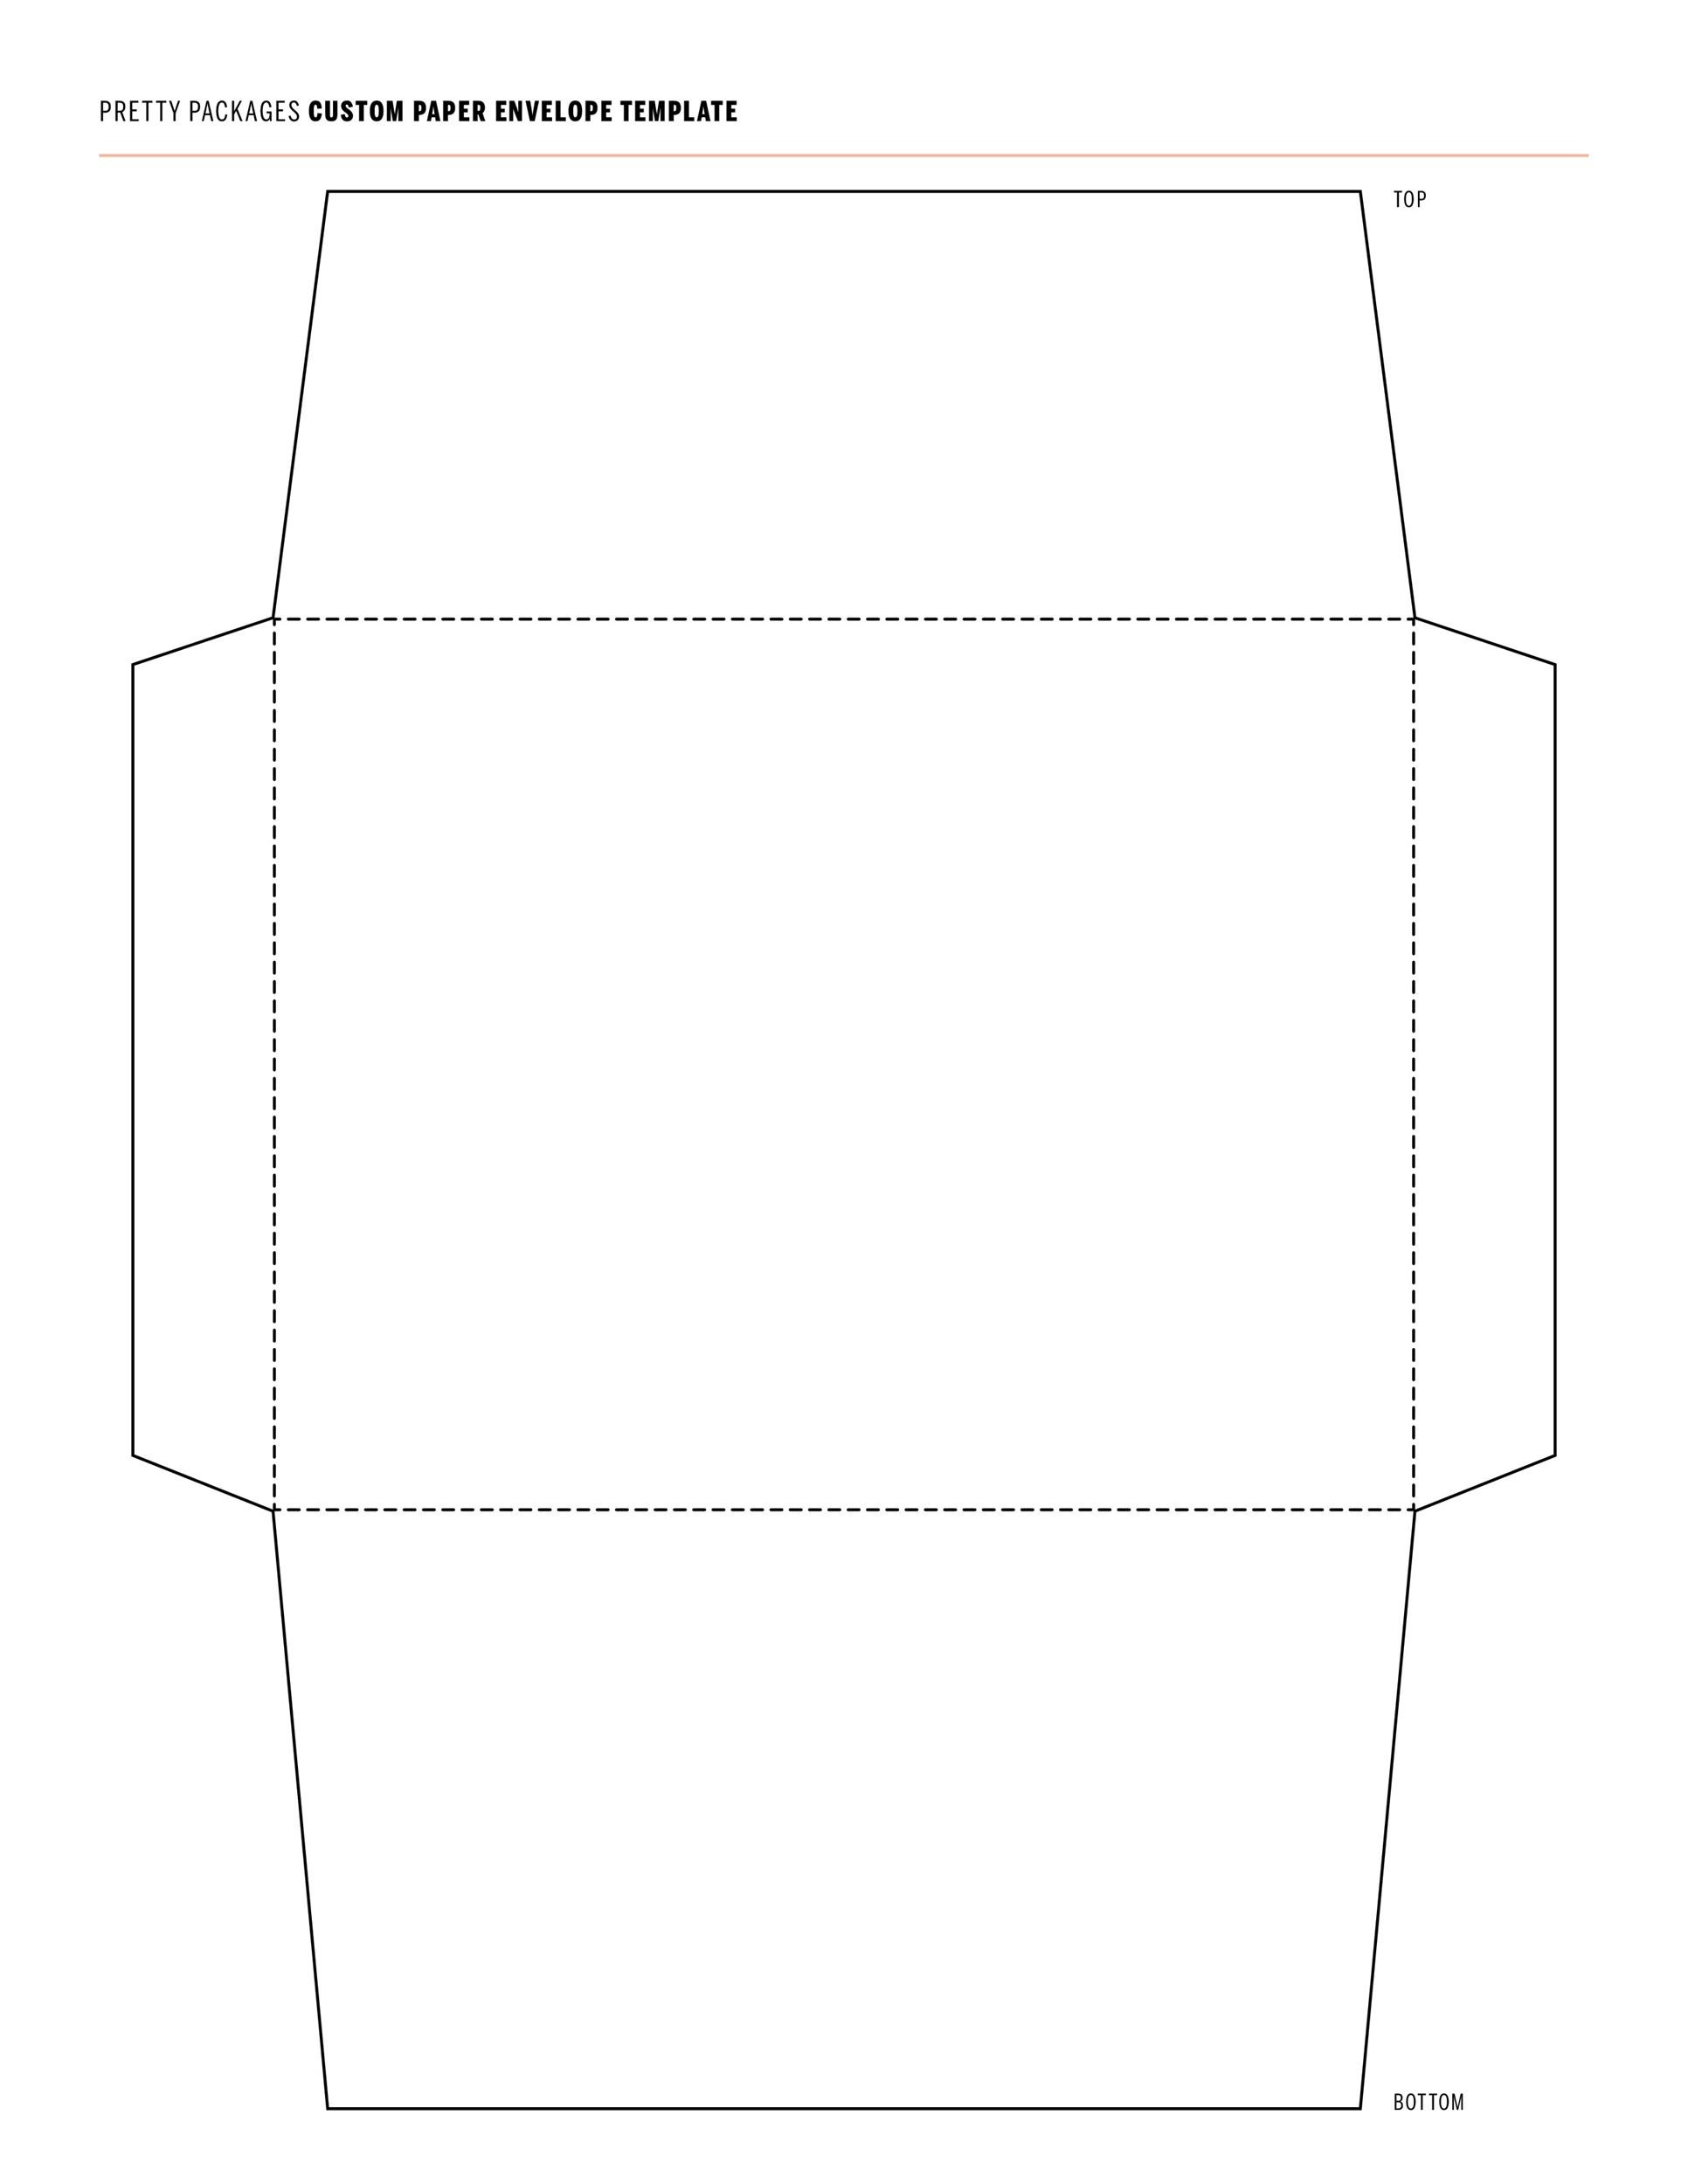 free envelope template 08 - Free Envelope Template